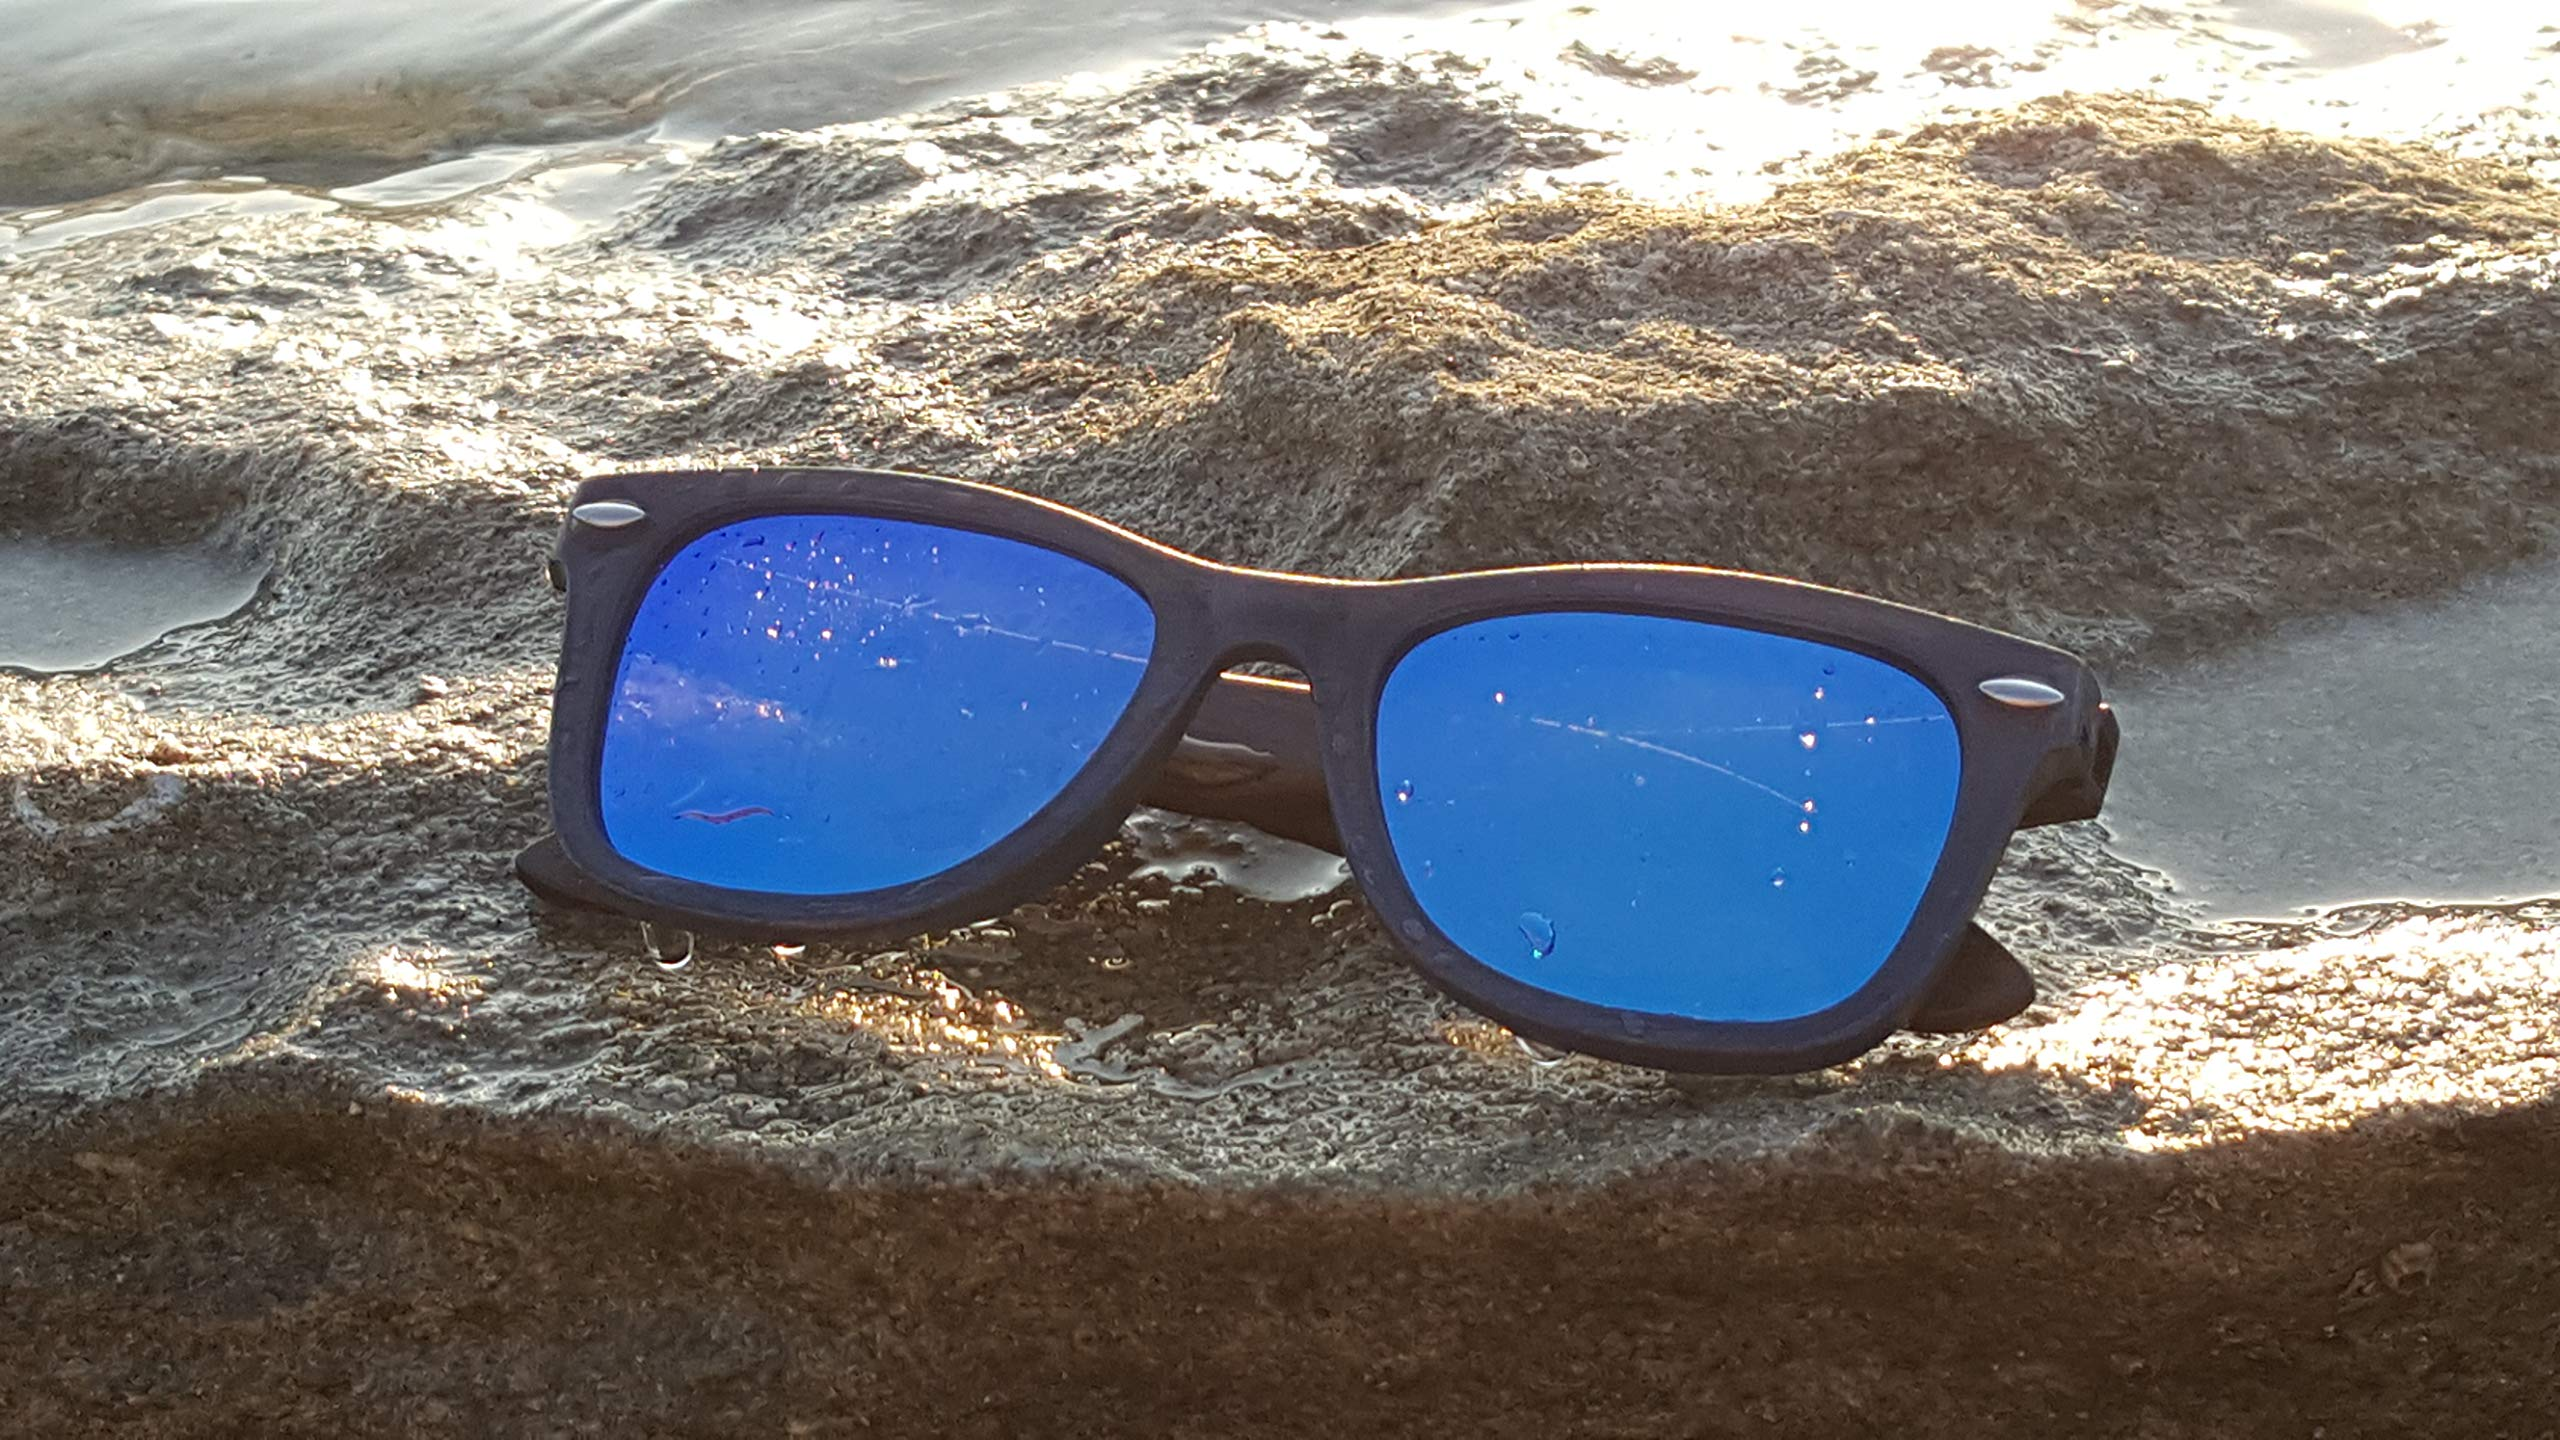 Real Wood Sunglasses Wayfarer UV-400 Polarized Lenses Plus Cap in Gift box by WOODB (Image #7)